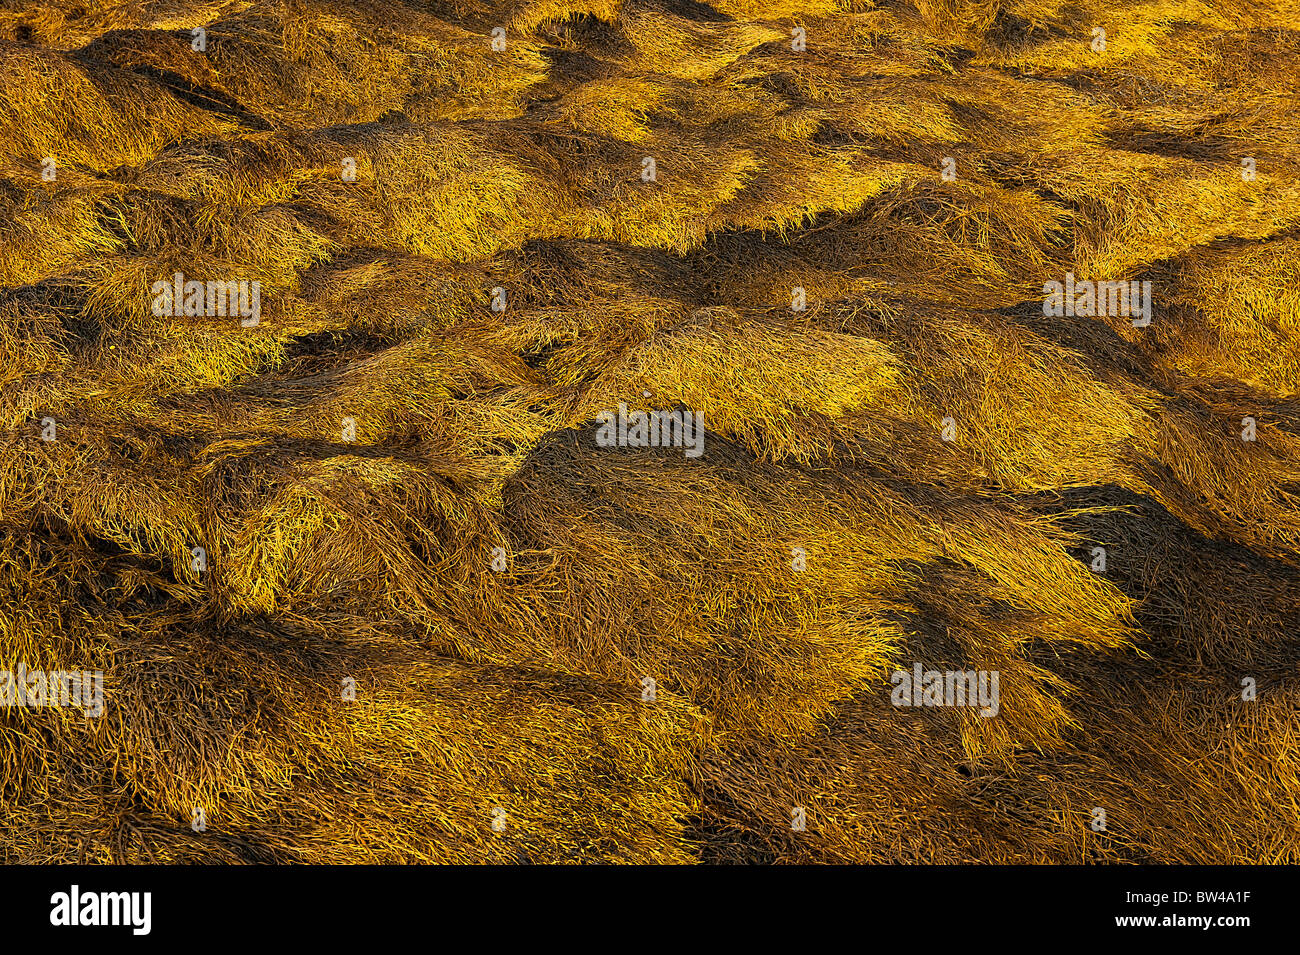 Seaweed at low tide, Maine, USA - Stock Image